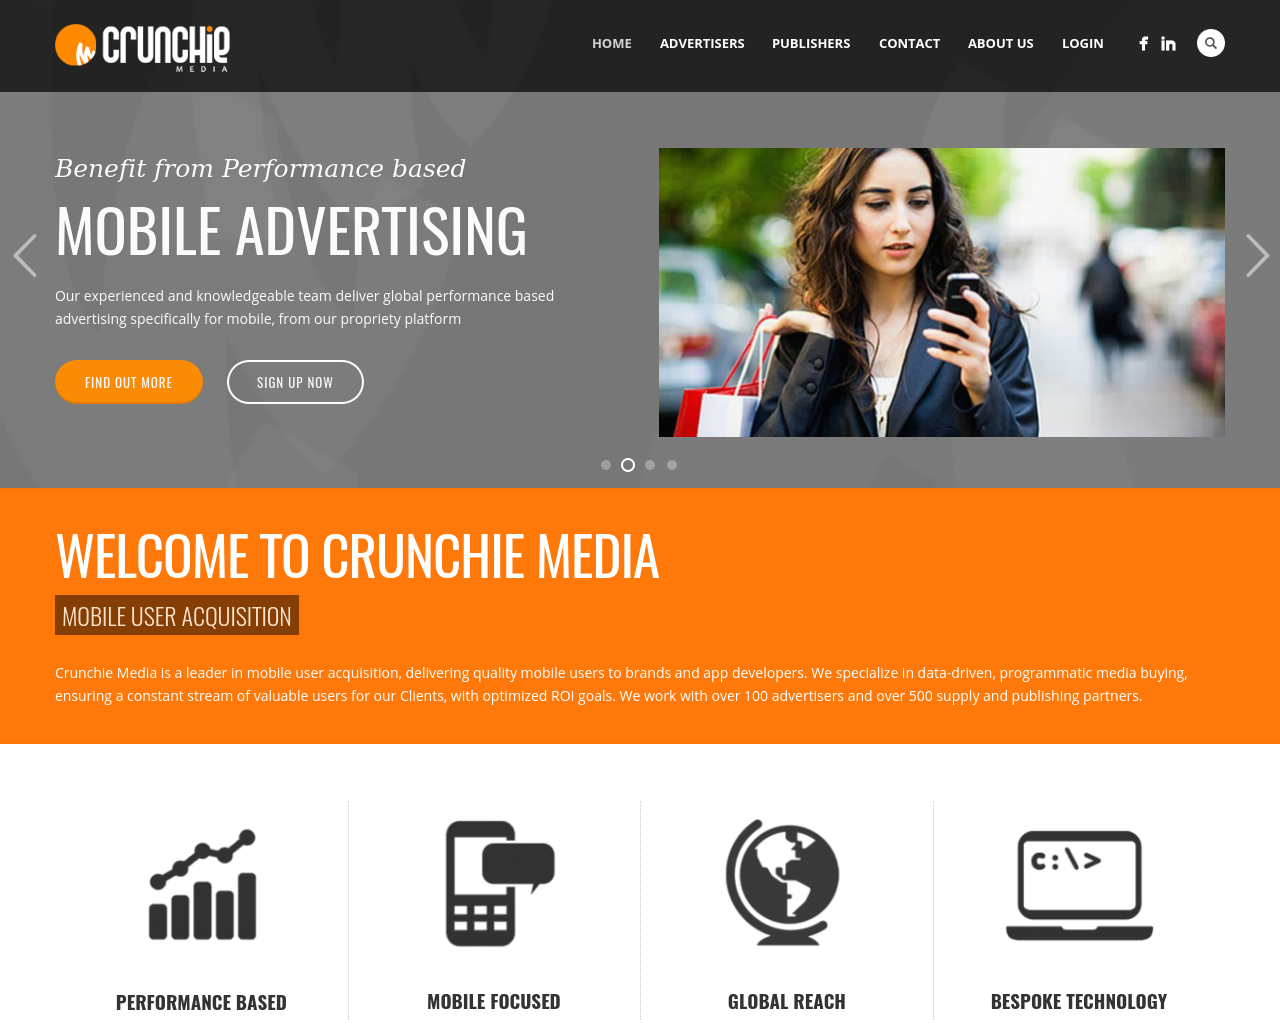 Crunchie-Media-Advertising-Reviews-Pricing